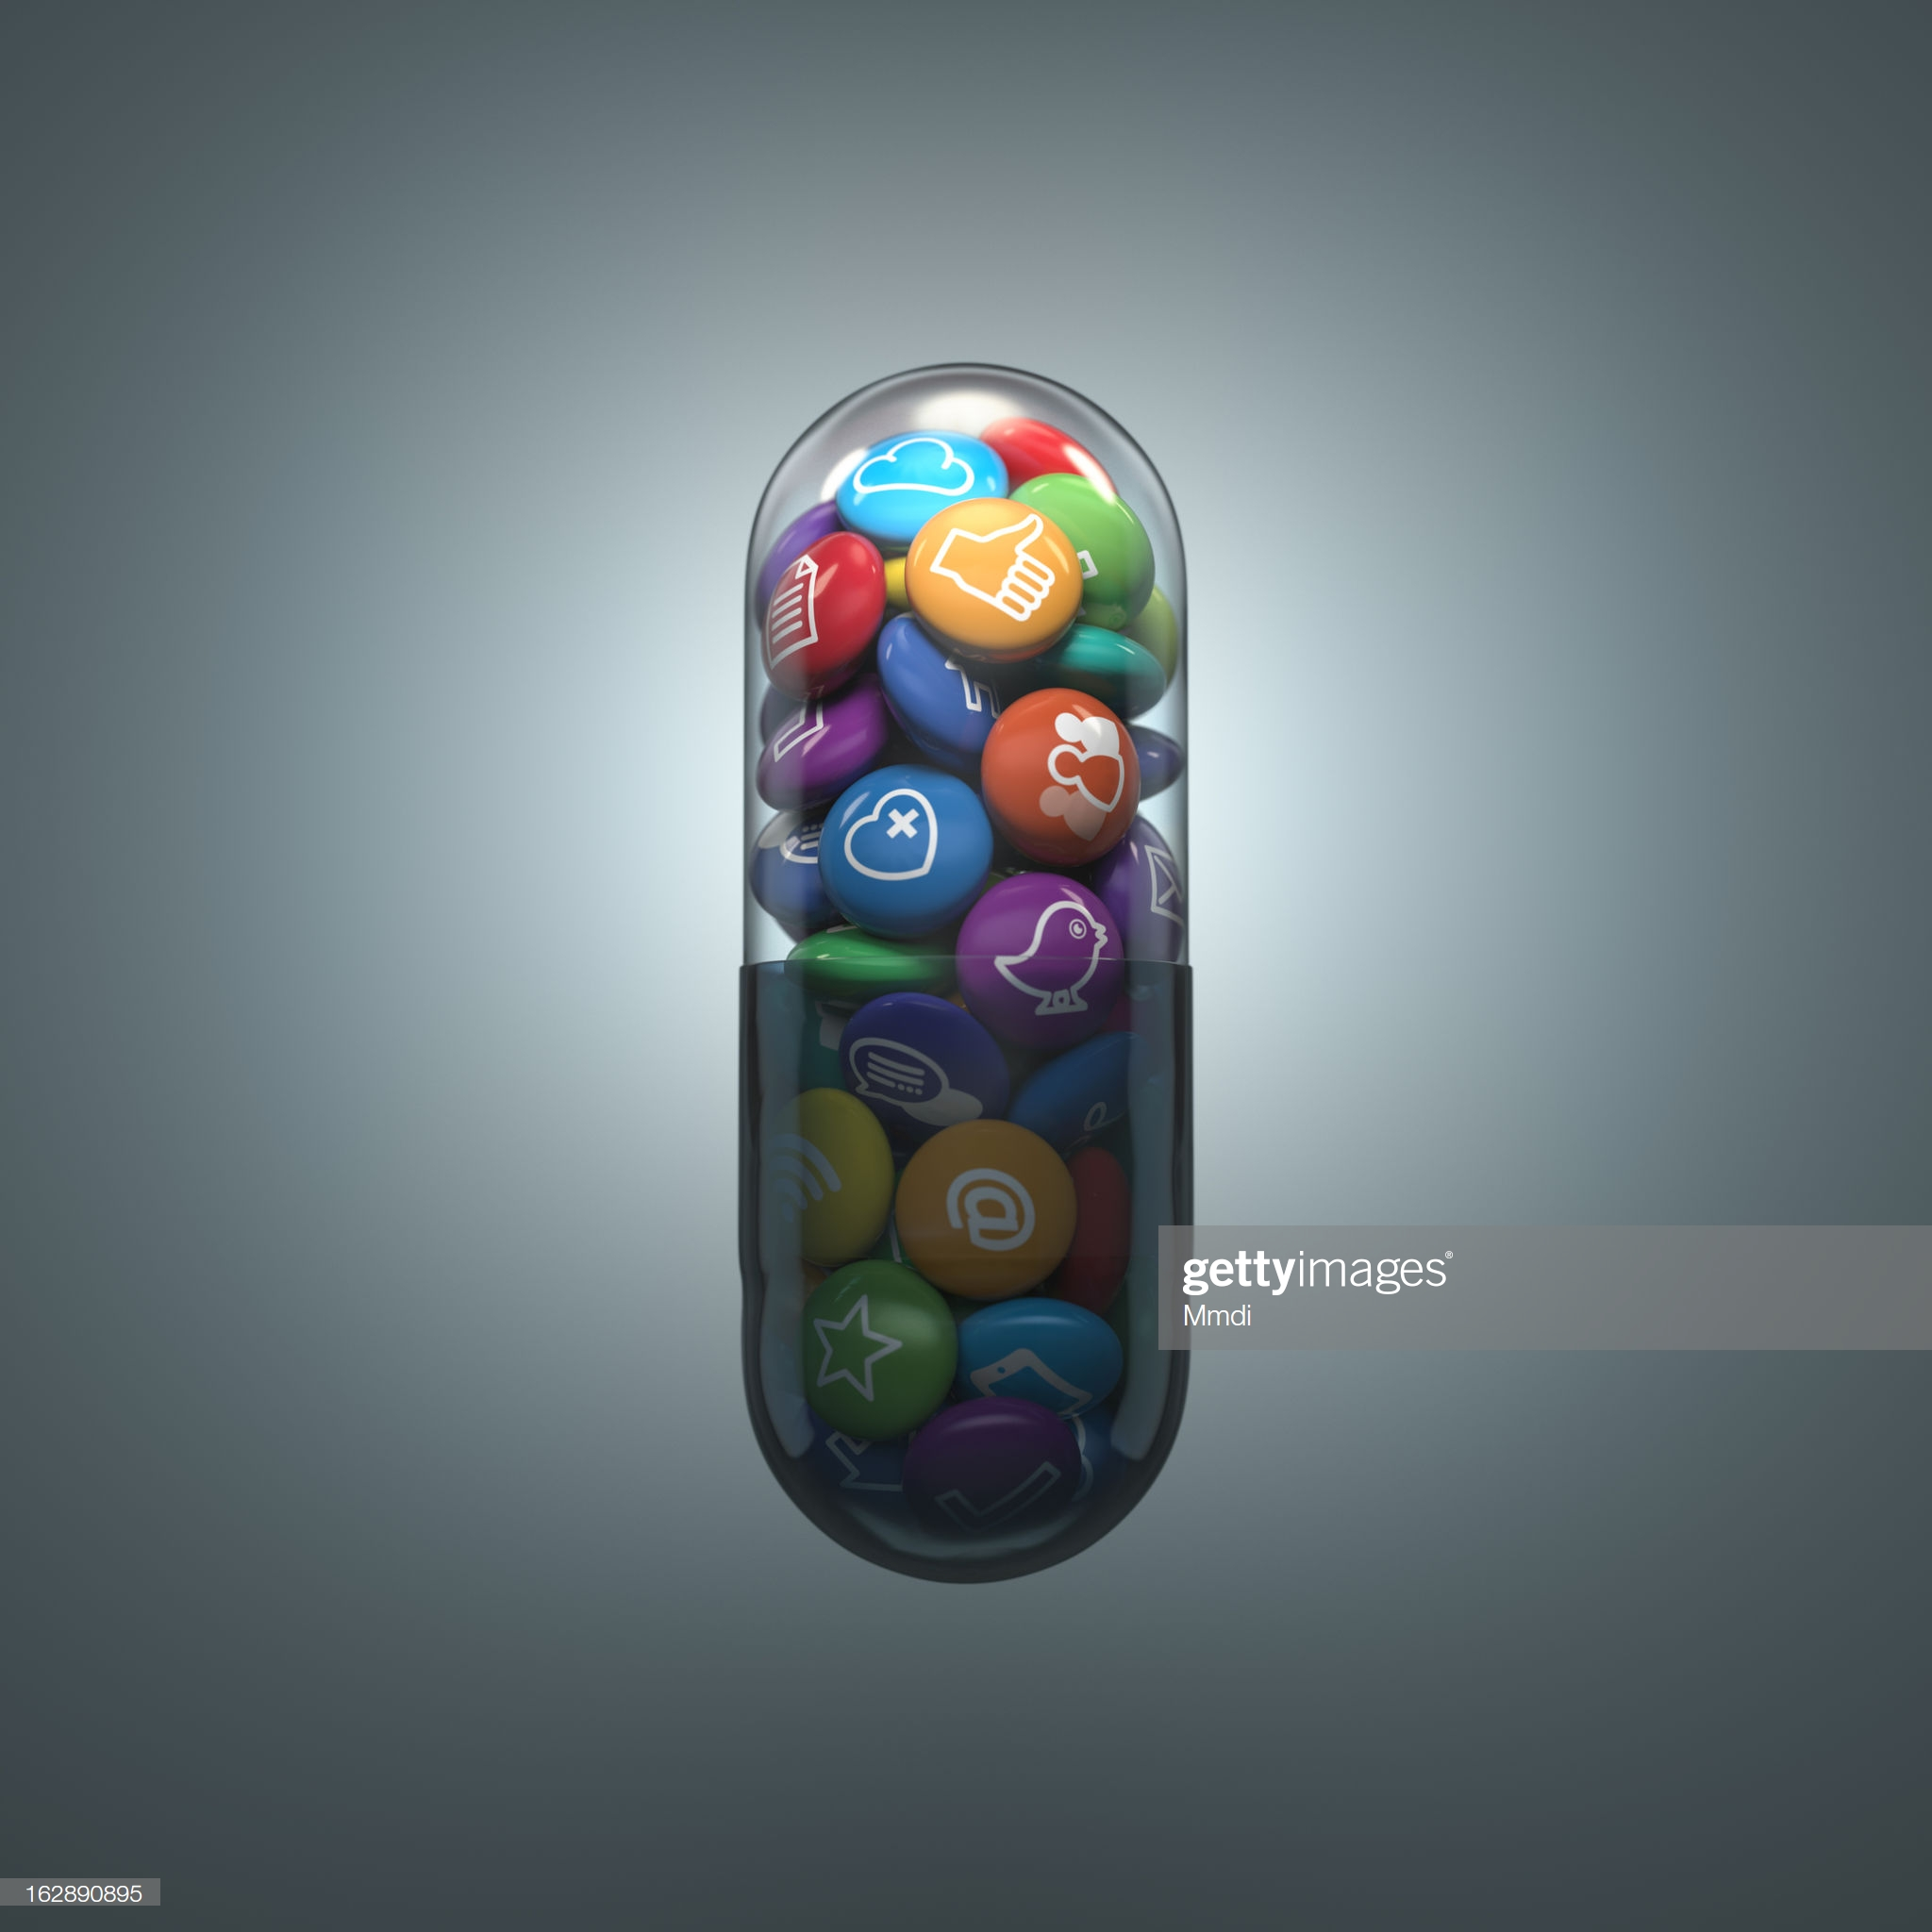 A capsule showing social media icons with a gray background